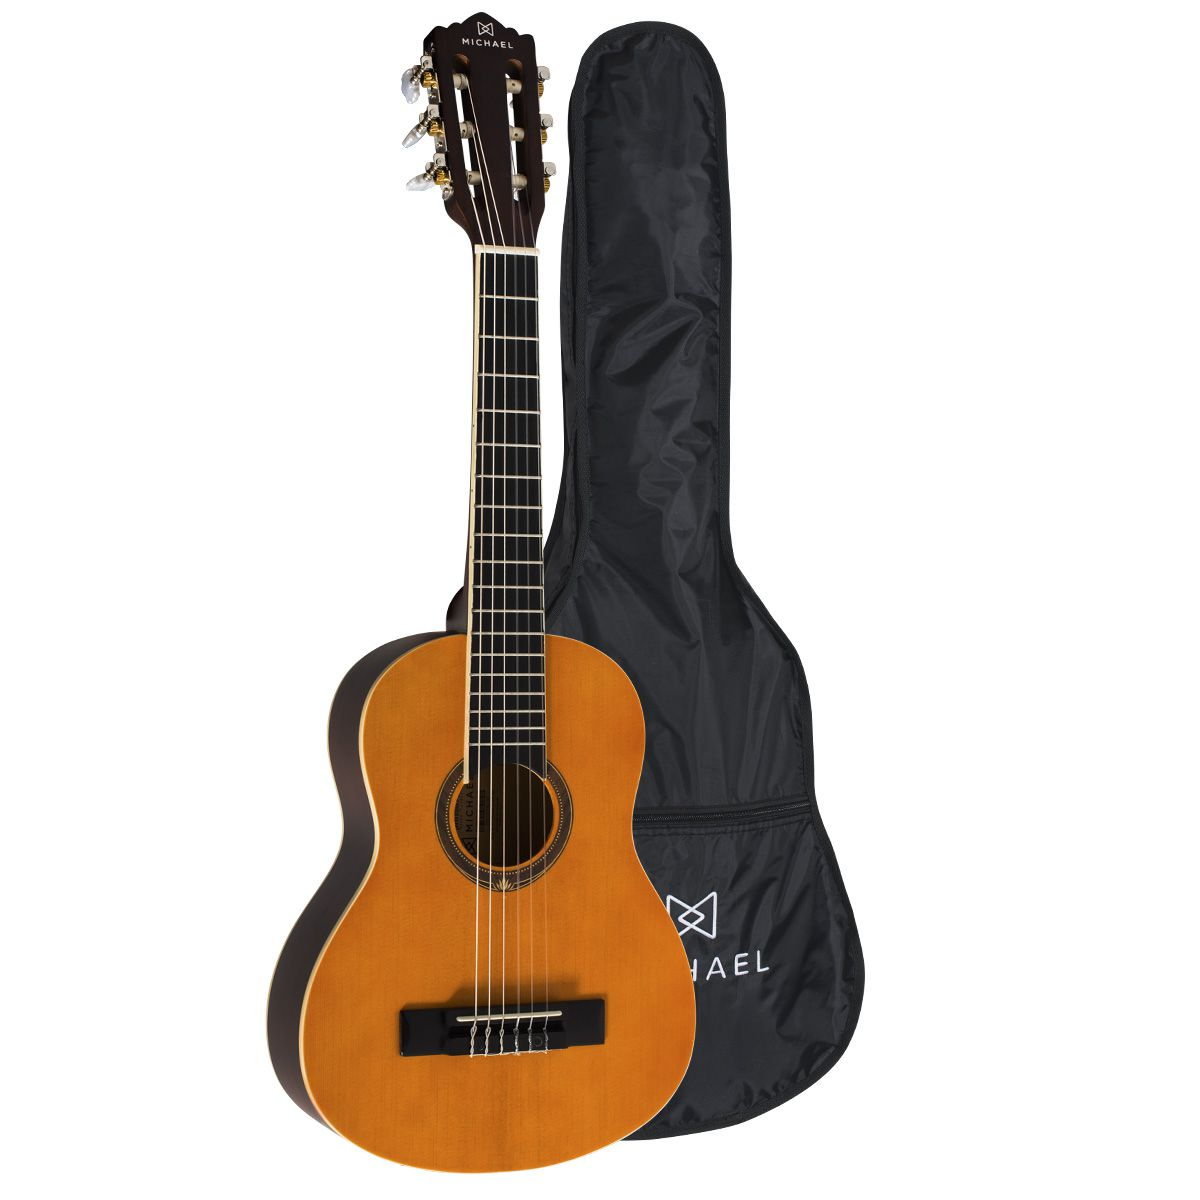 Violão Michael VM10E Natural Satin – Acústico Nylon